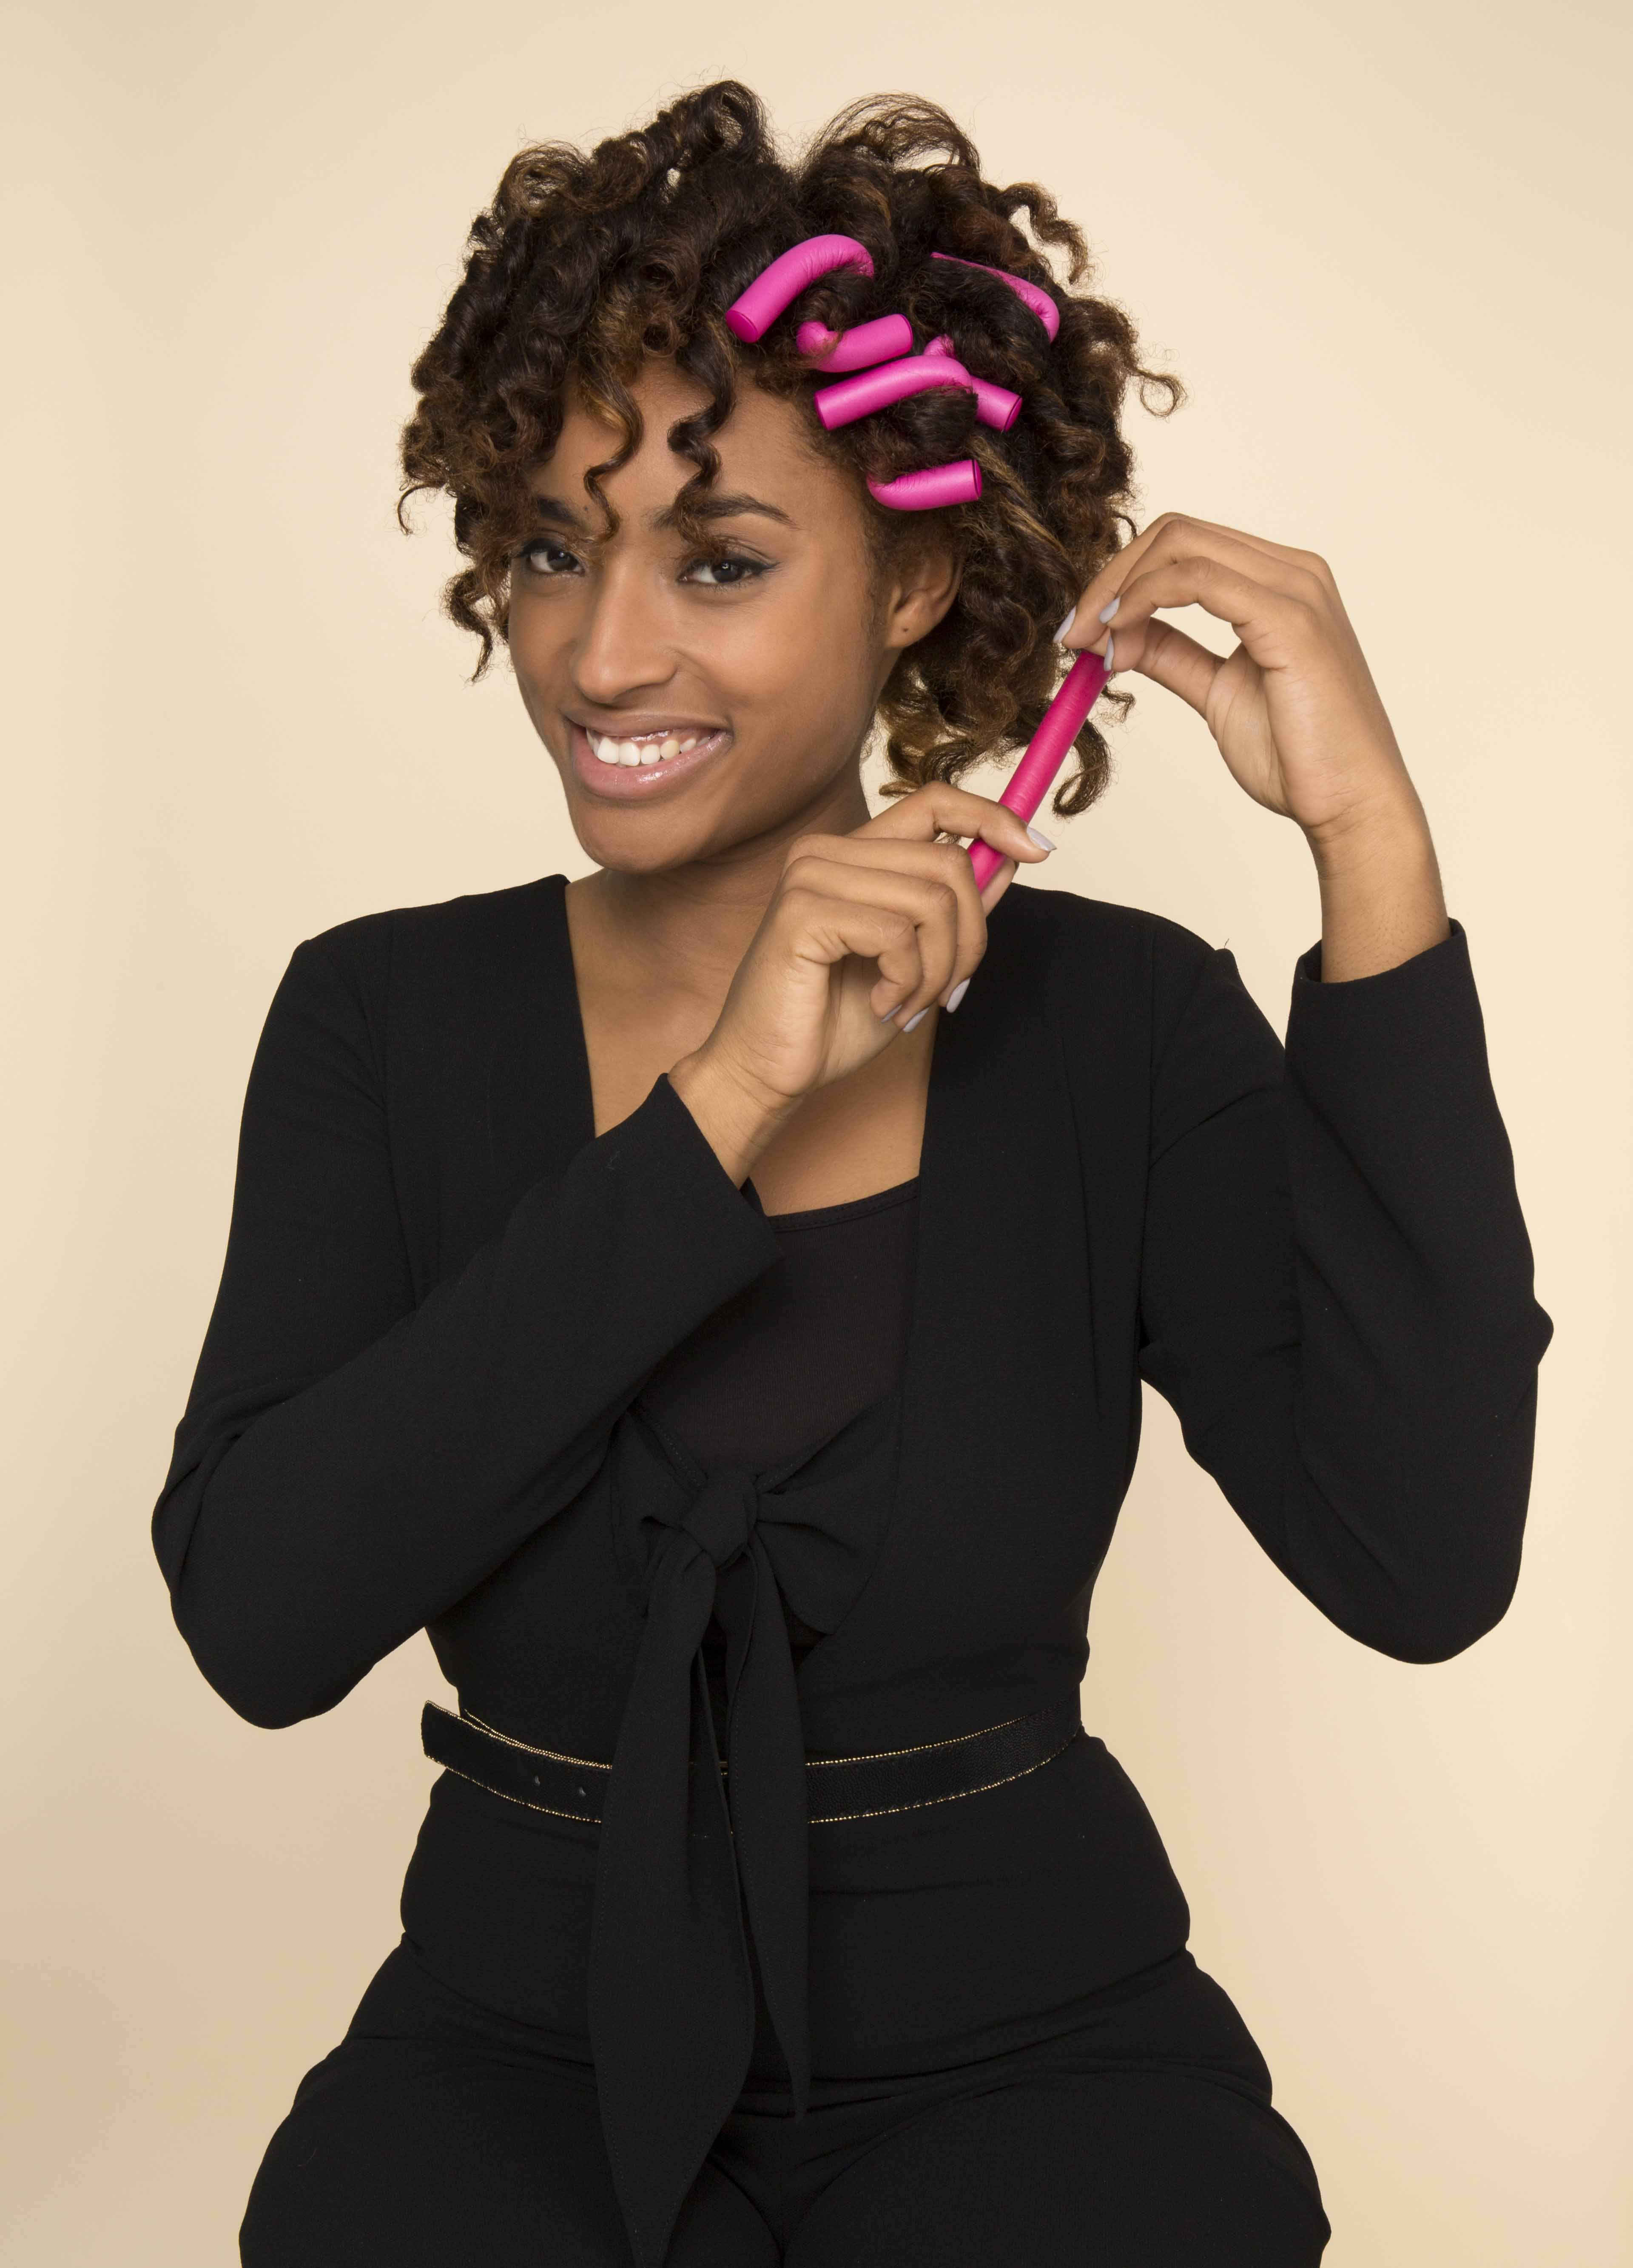 flexi rods natural hair styles flexi rods give you defined curls without heat 4914 | natural hair flexi rods 9 remove